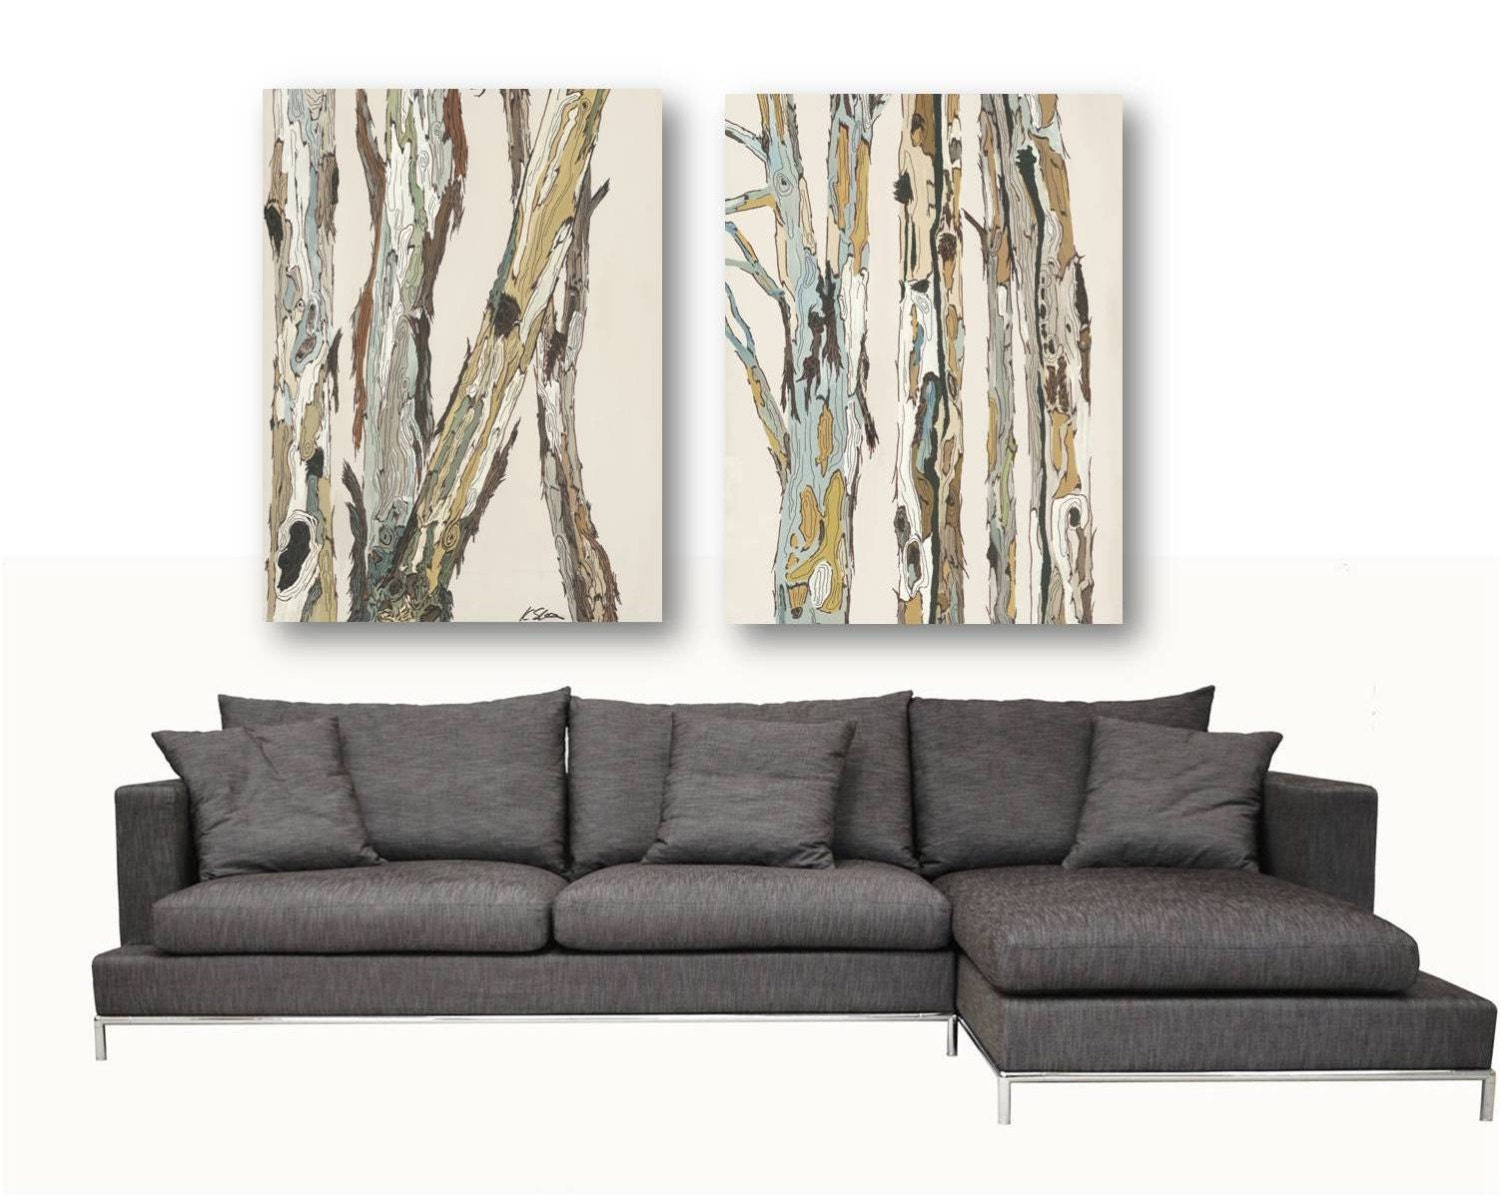 Extra large wall art diptych set canvas oversized by for Big wall art